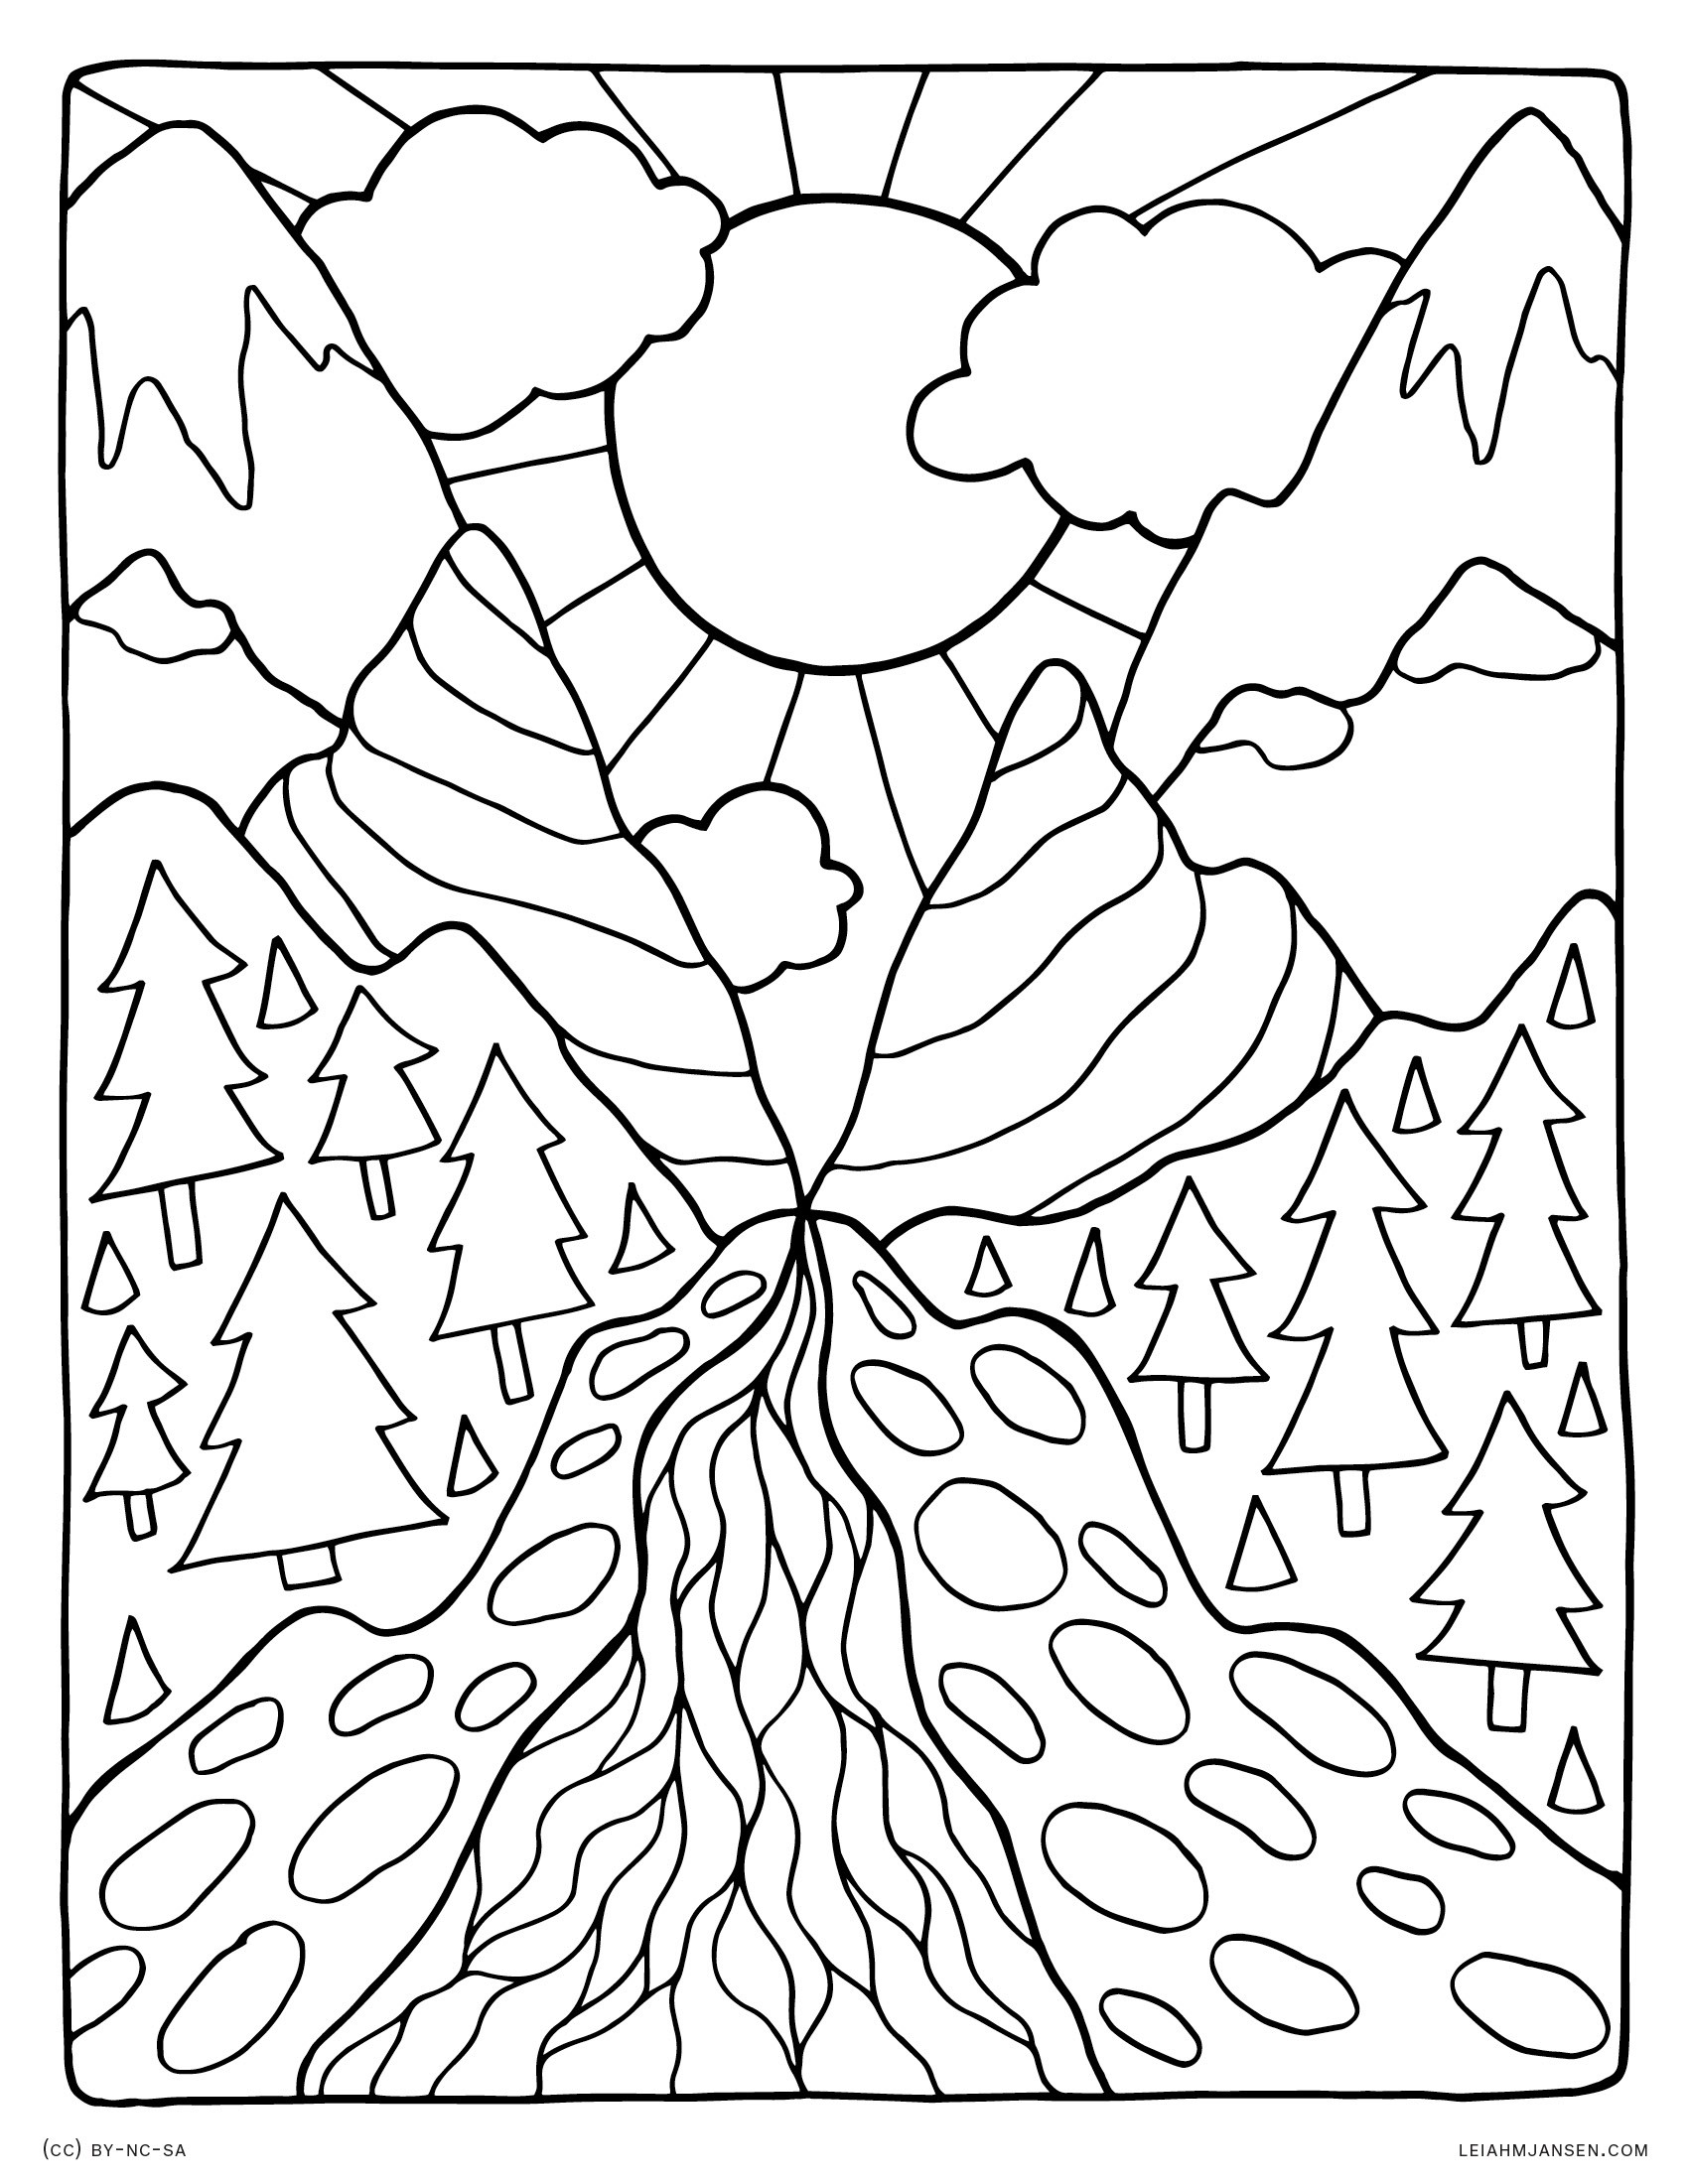 coloring nature images printable nature coloring pages for kids cool2bkids nature coloring images